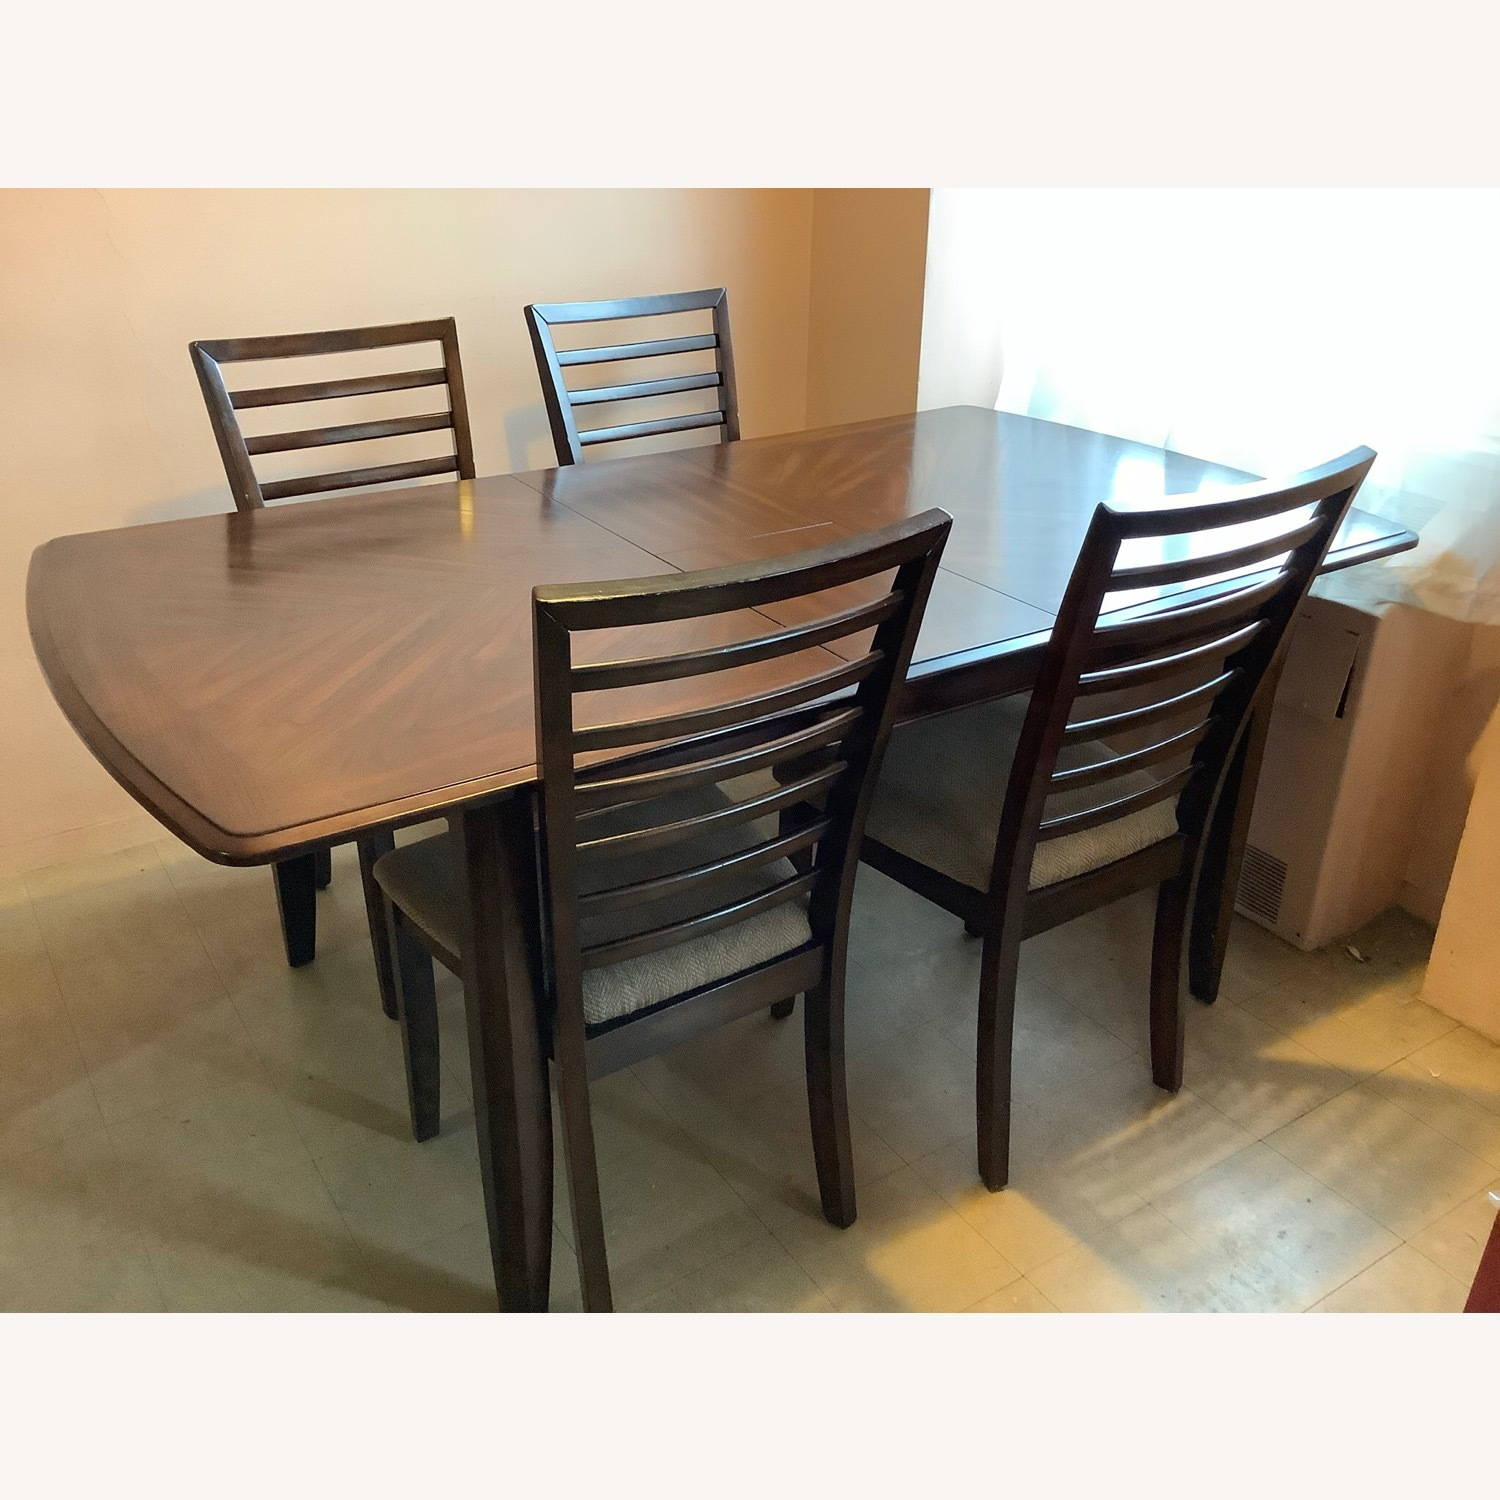 Raymour & Flanigan Butterfly Leaf Table with 4 chairs - image-9